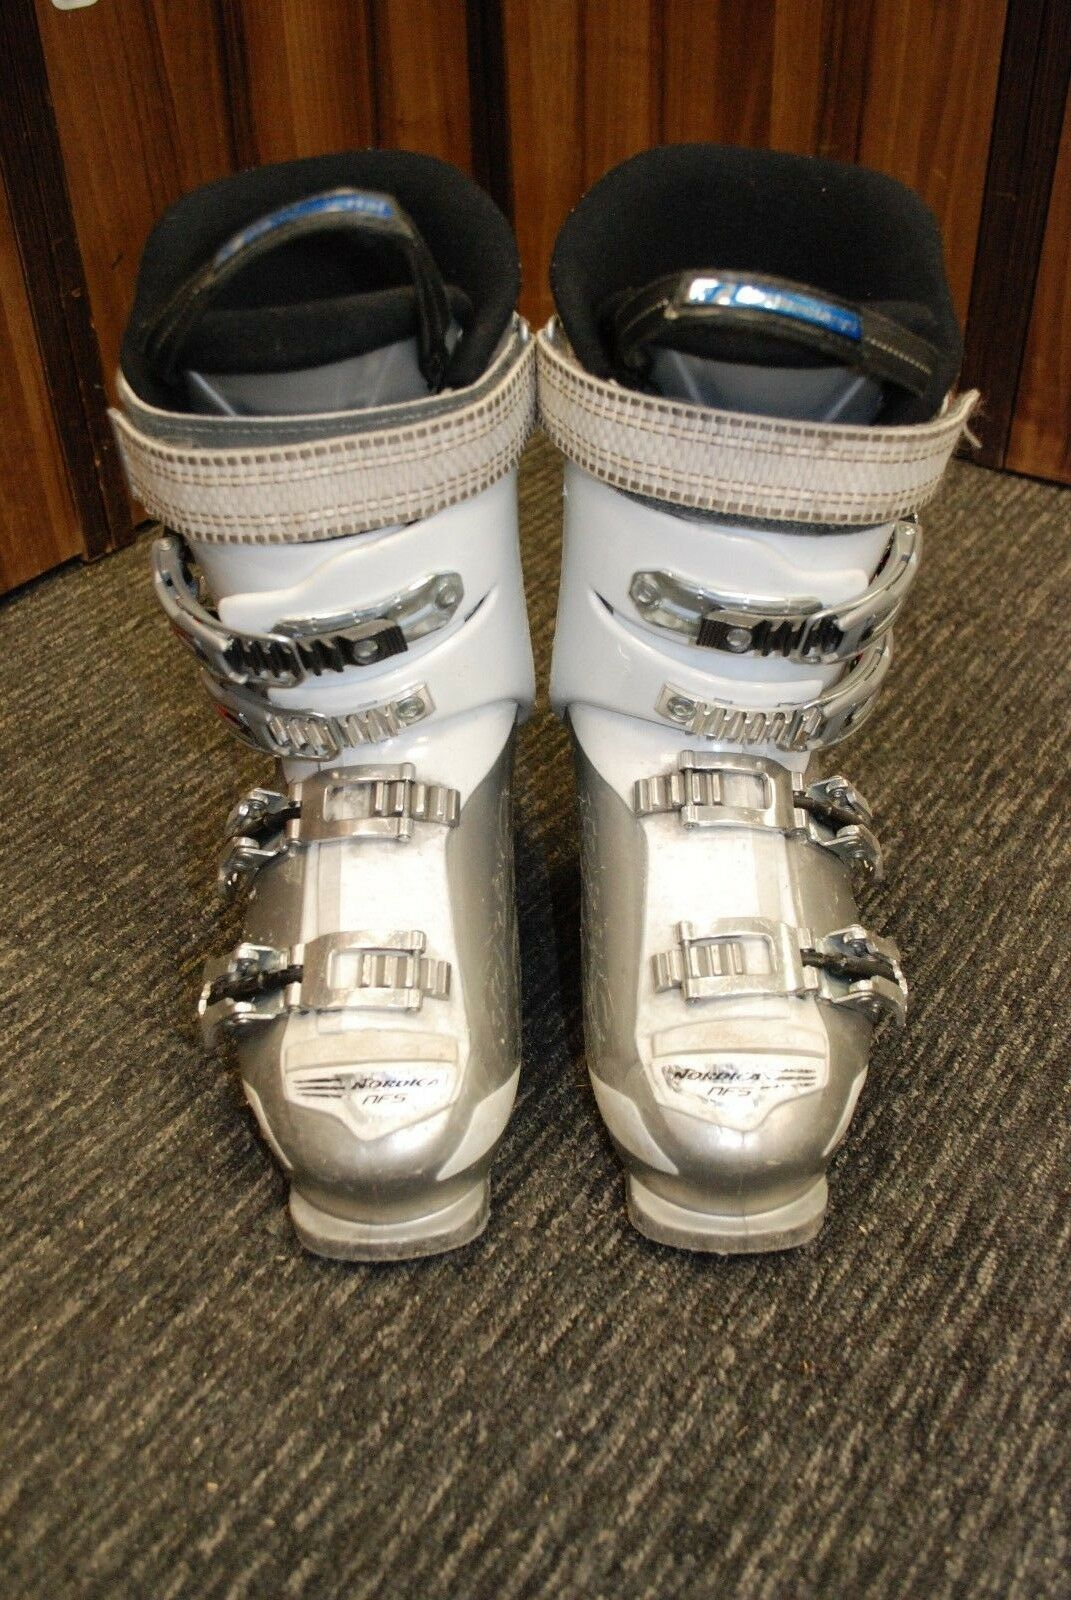 Nordica Cruise NFS 245 Ski Boots (; ) + FREE BRAND NEW  Boots Bag